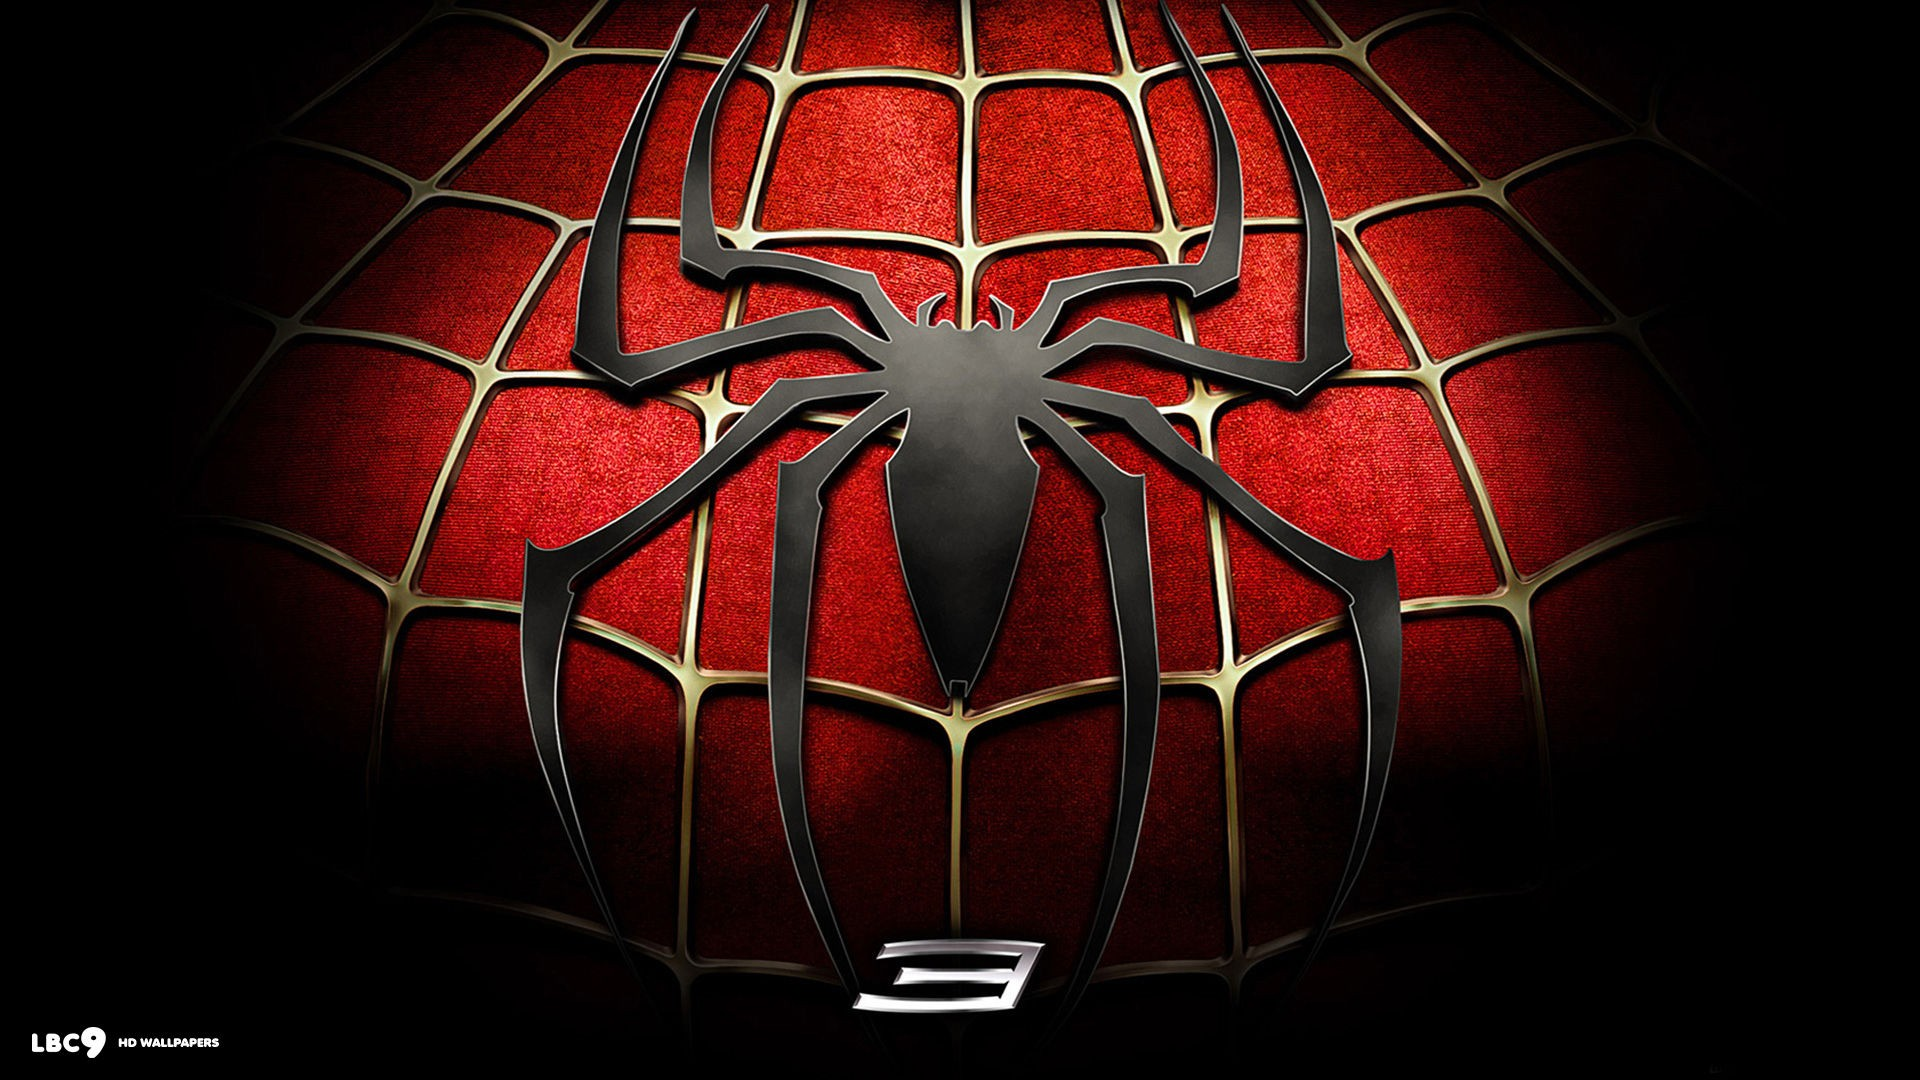 Spiderman Logo Wallpaper Hd 1080p.